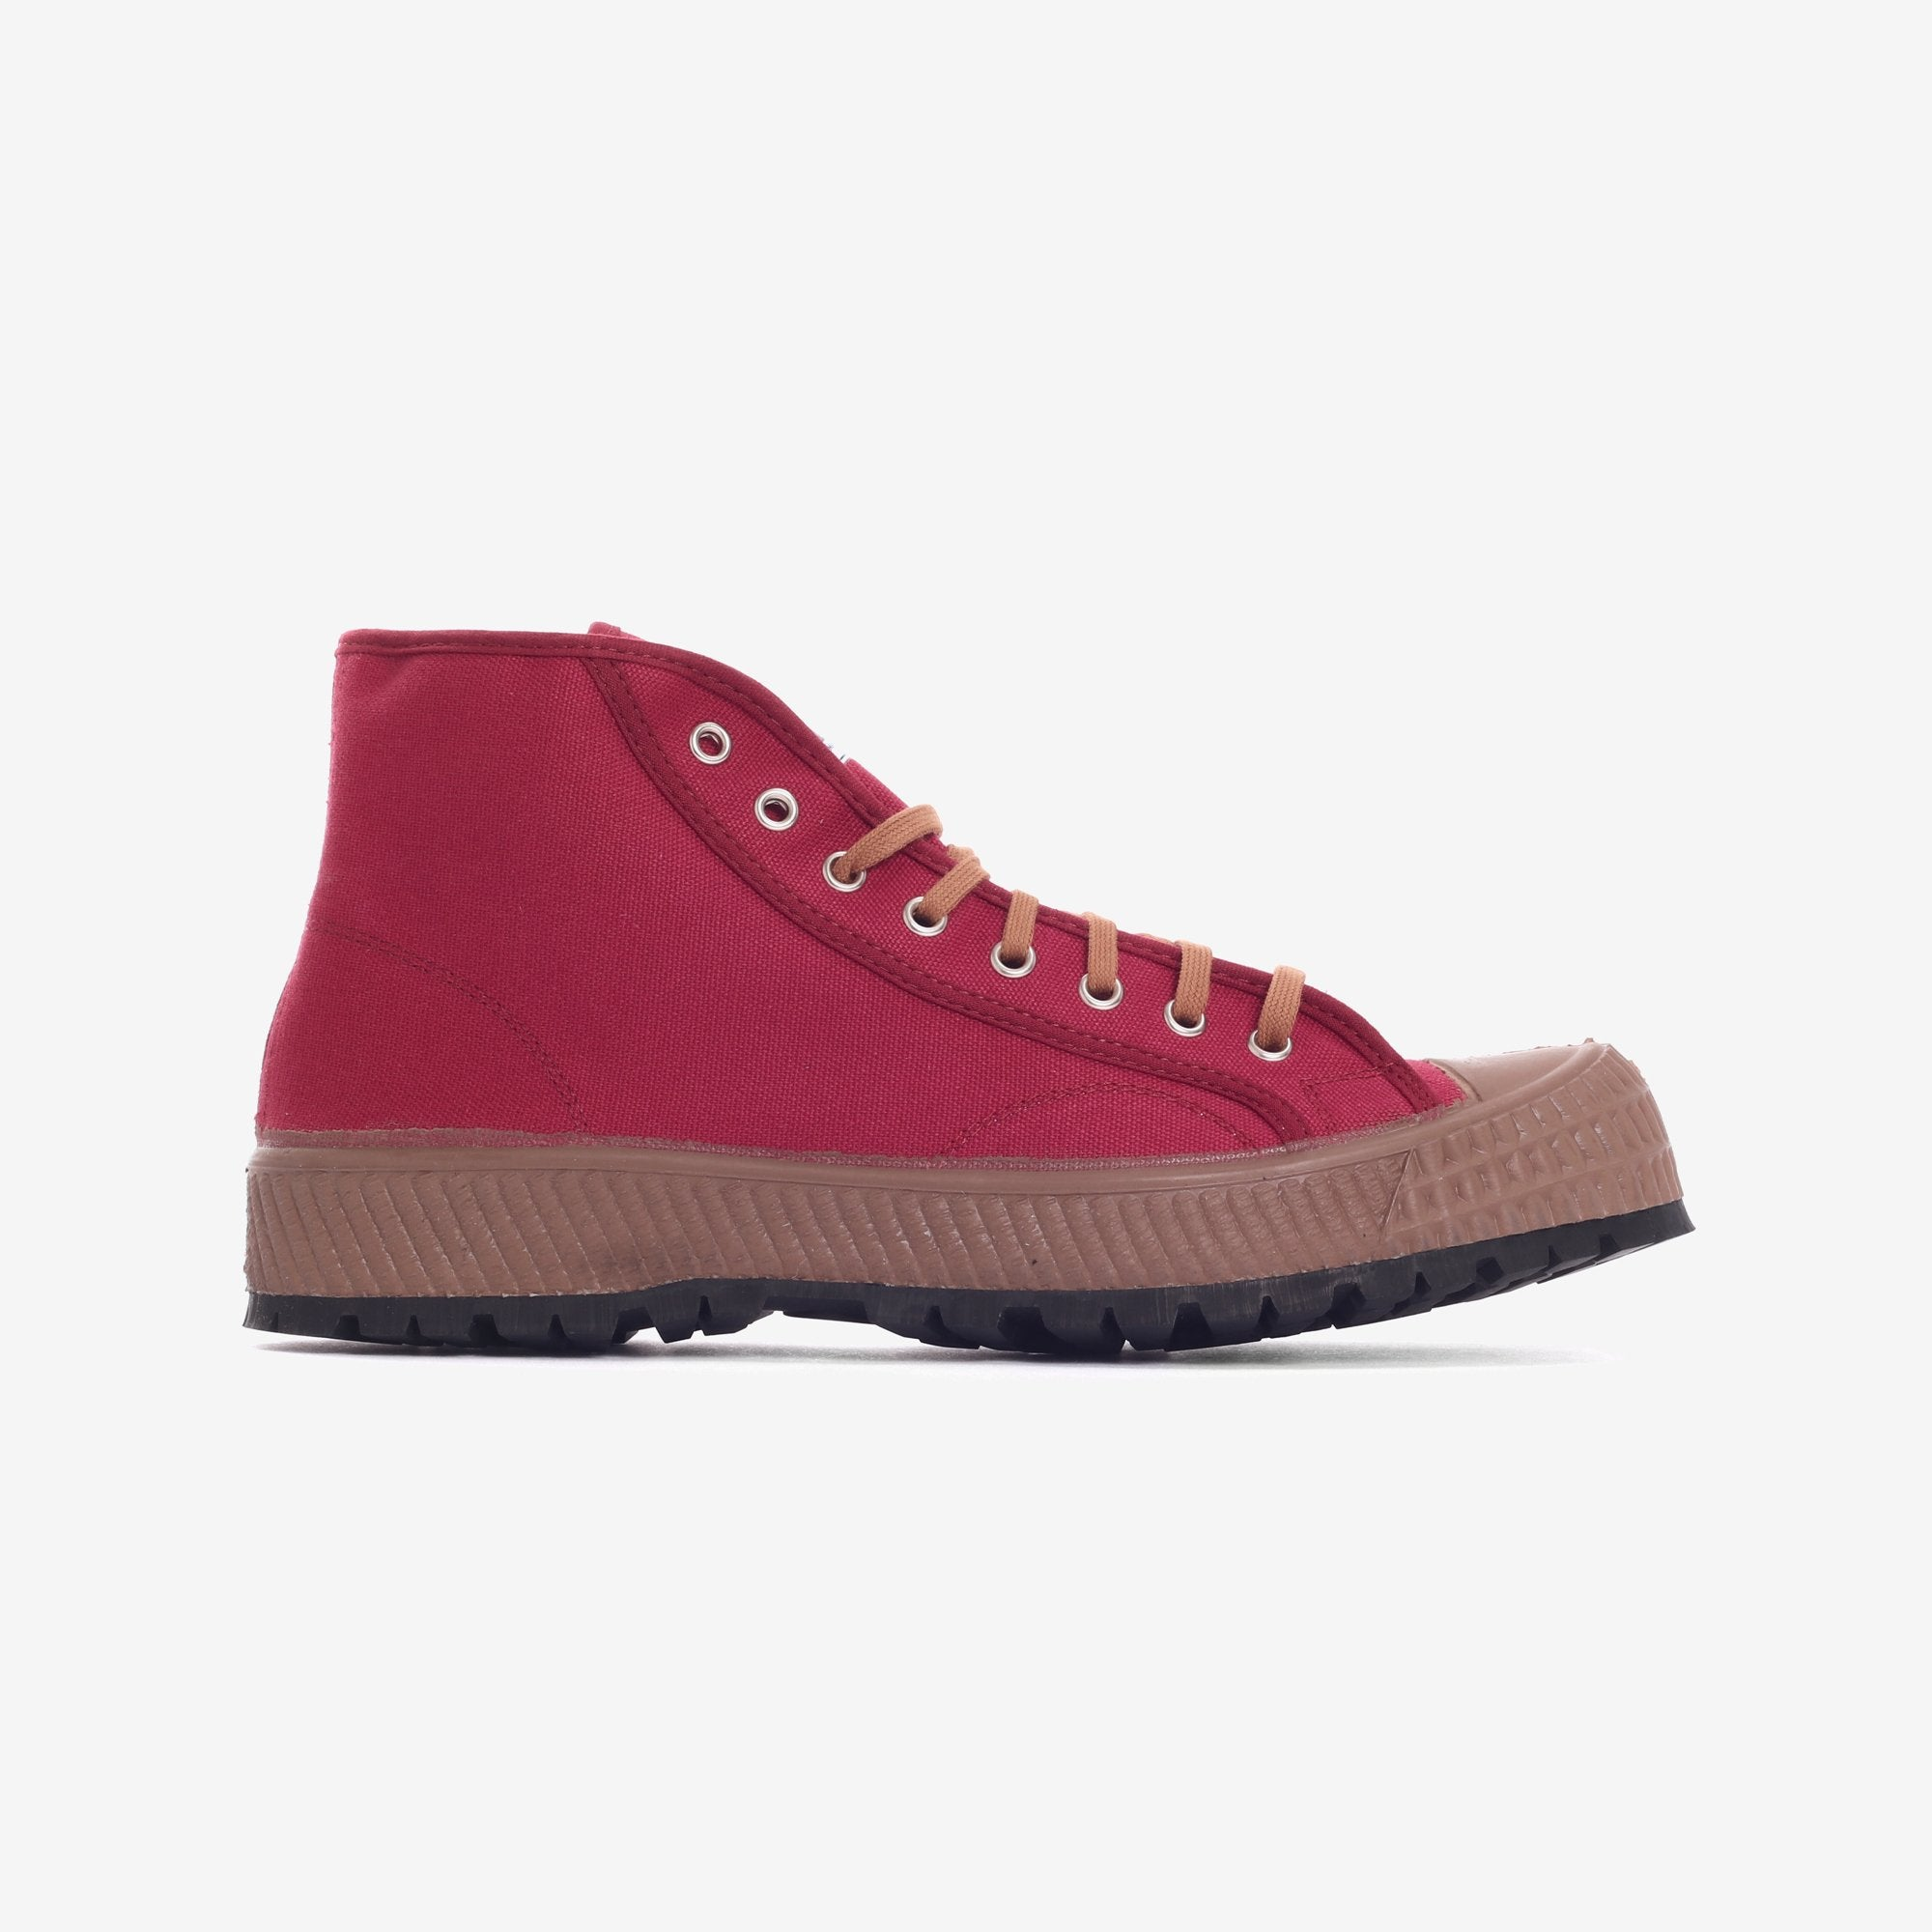 ZDA-climber-high-top-redbrown-202-sunnysiders.jpg